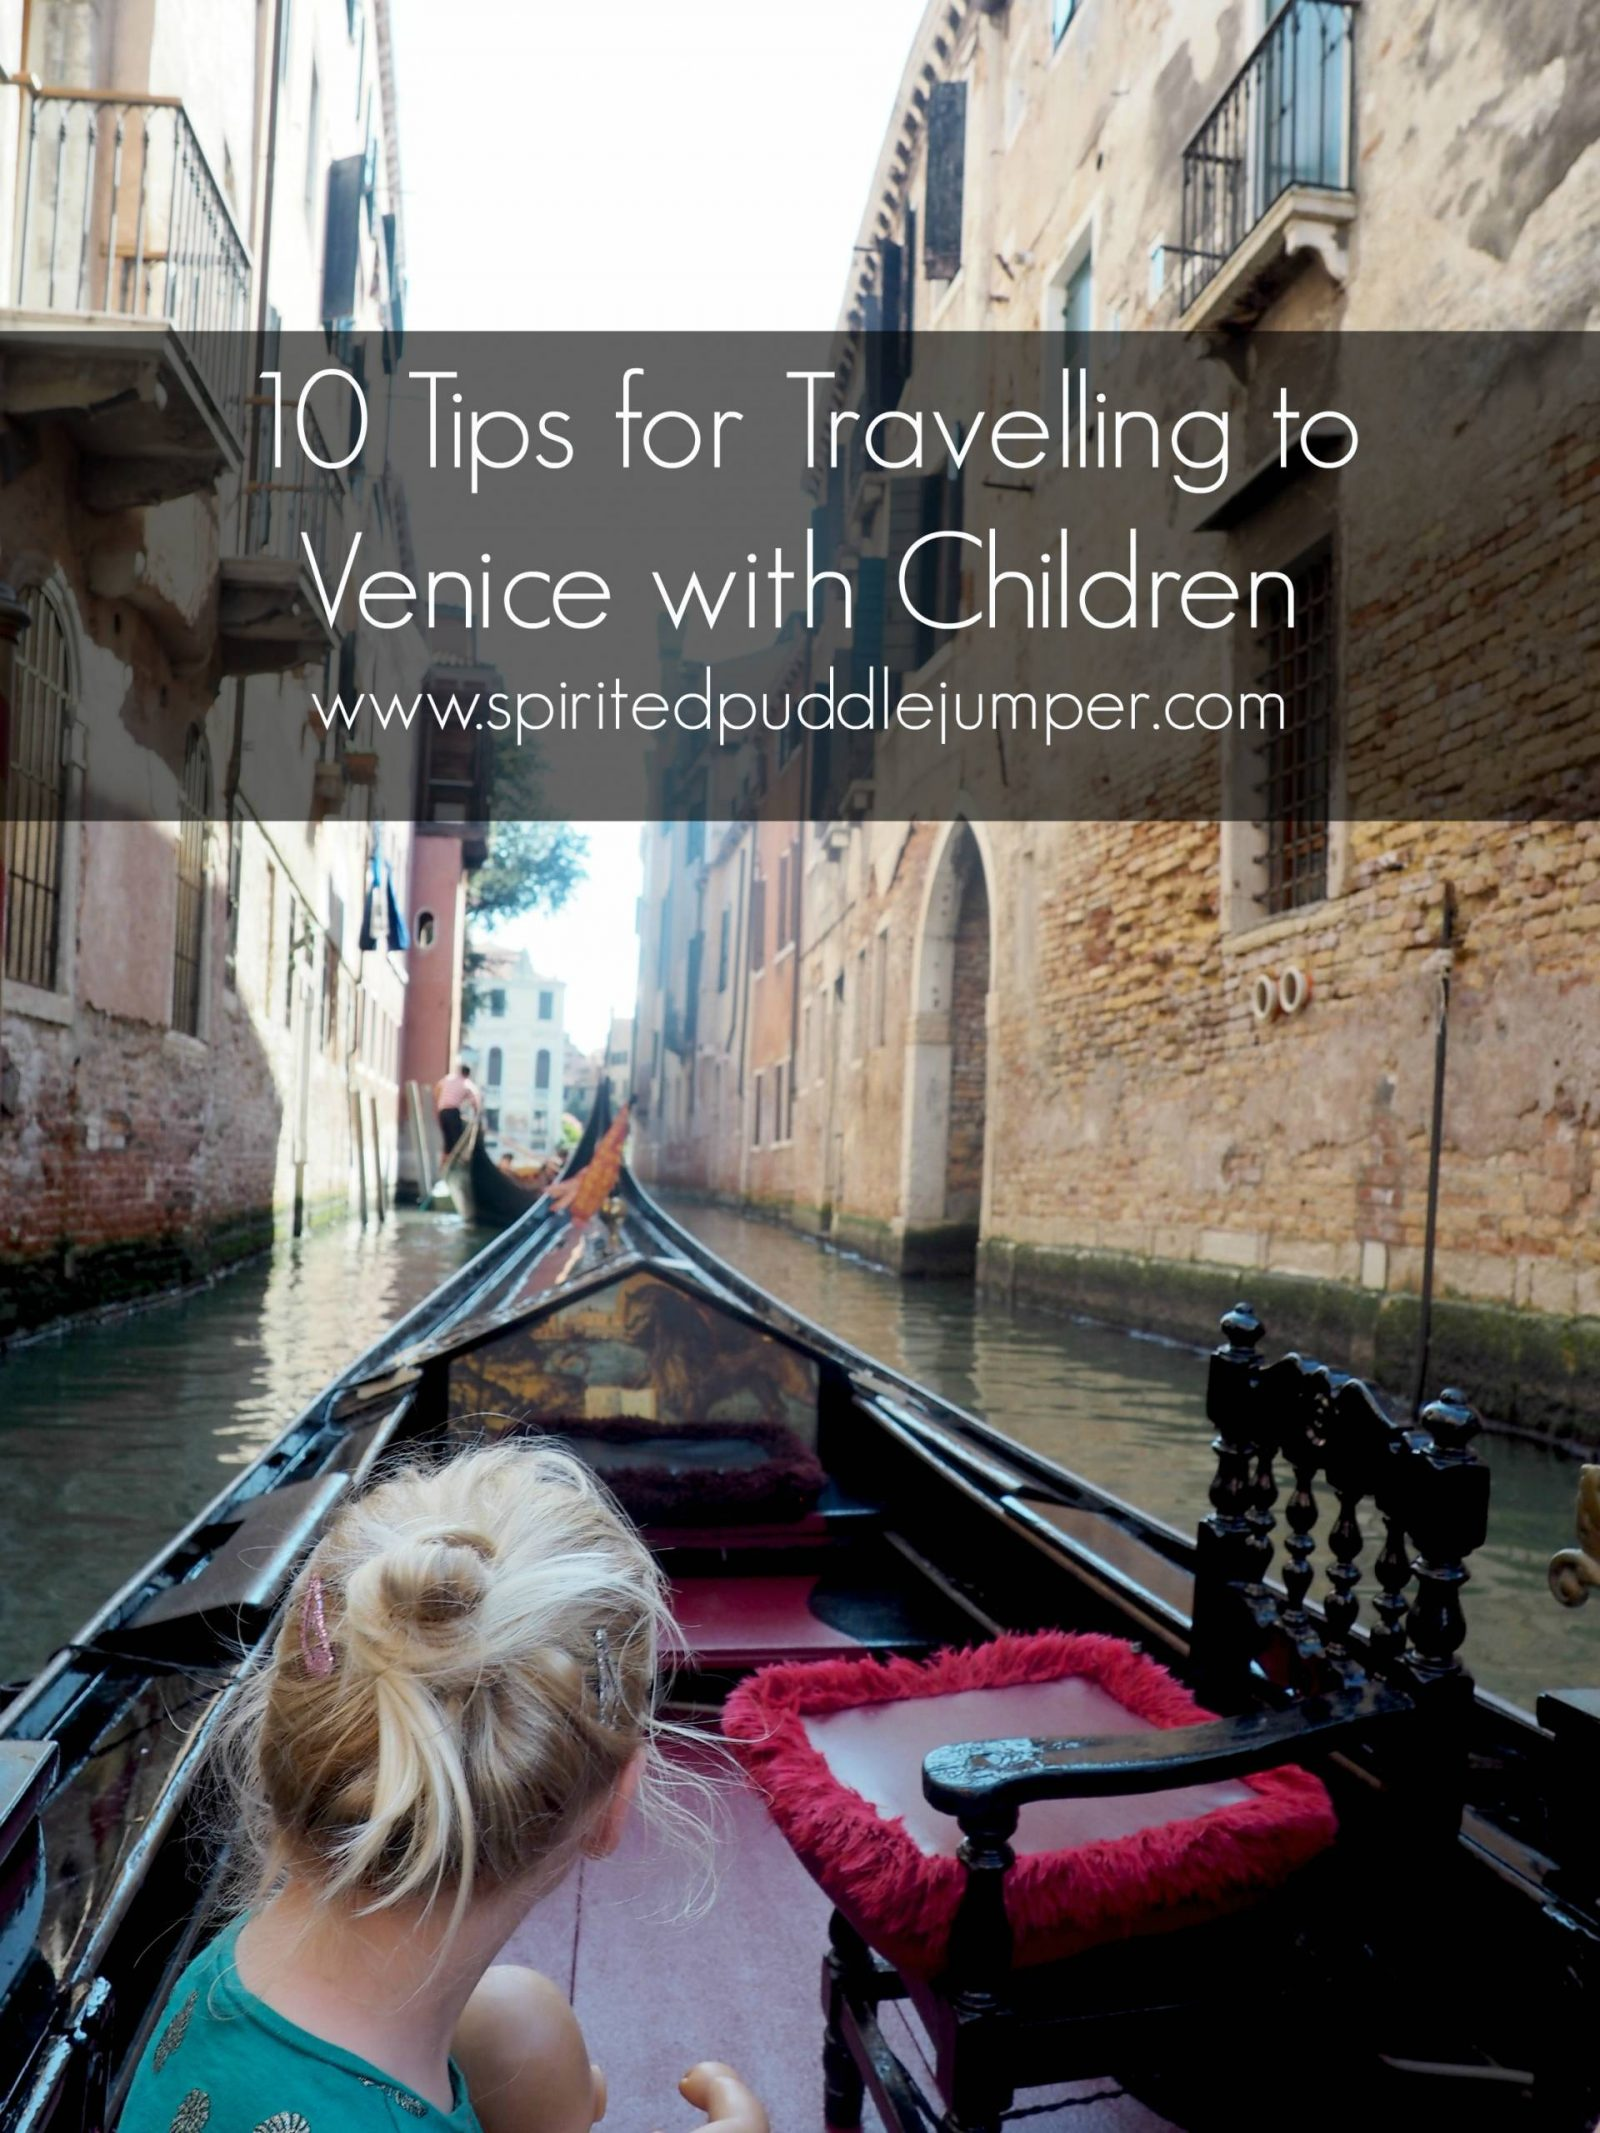 10 Tips for travelling to Venice with Children